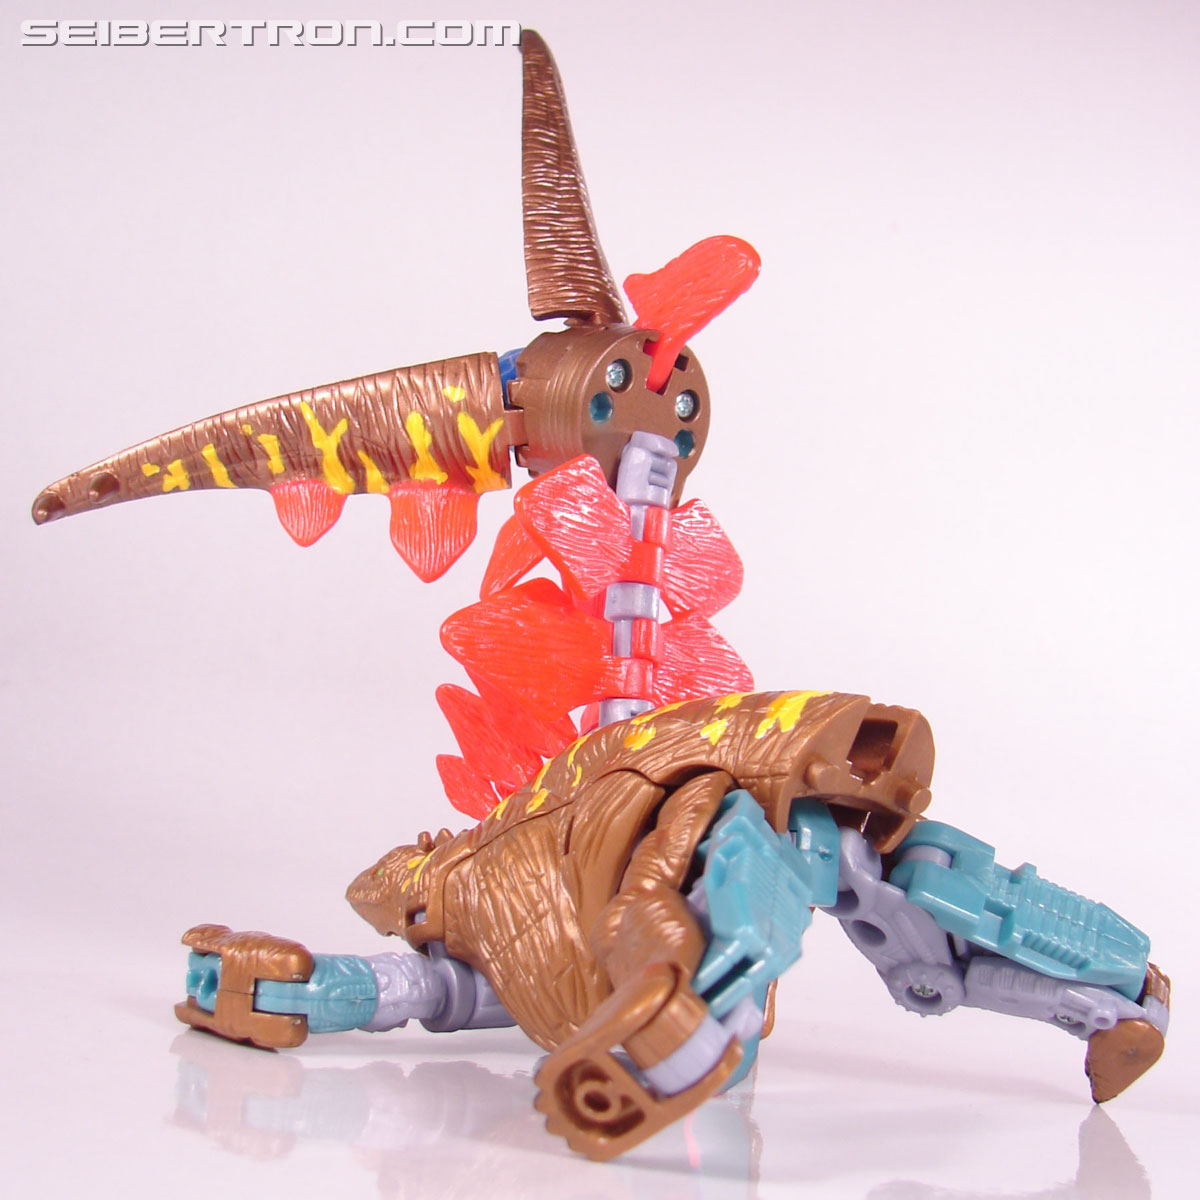 Transformers Beast Machines Striker (Image #23 of 52)